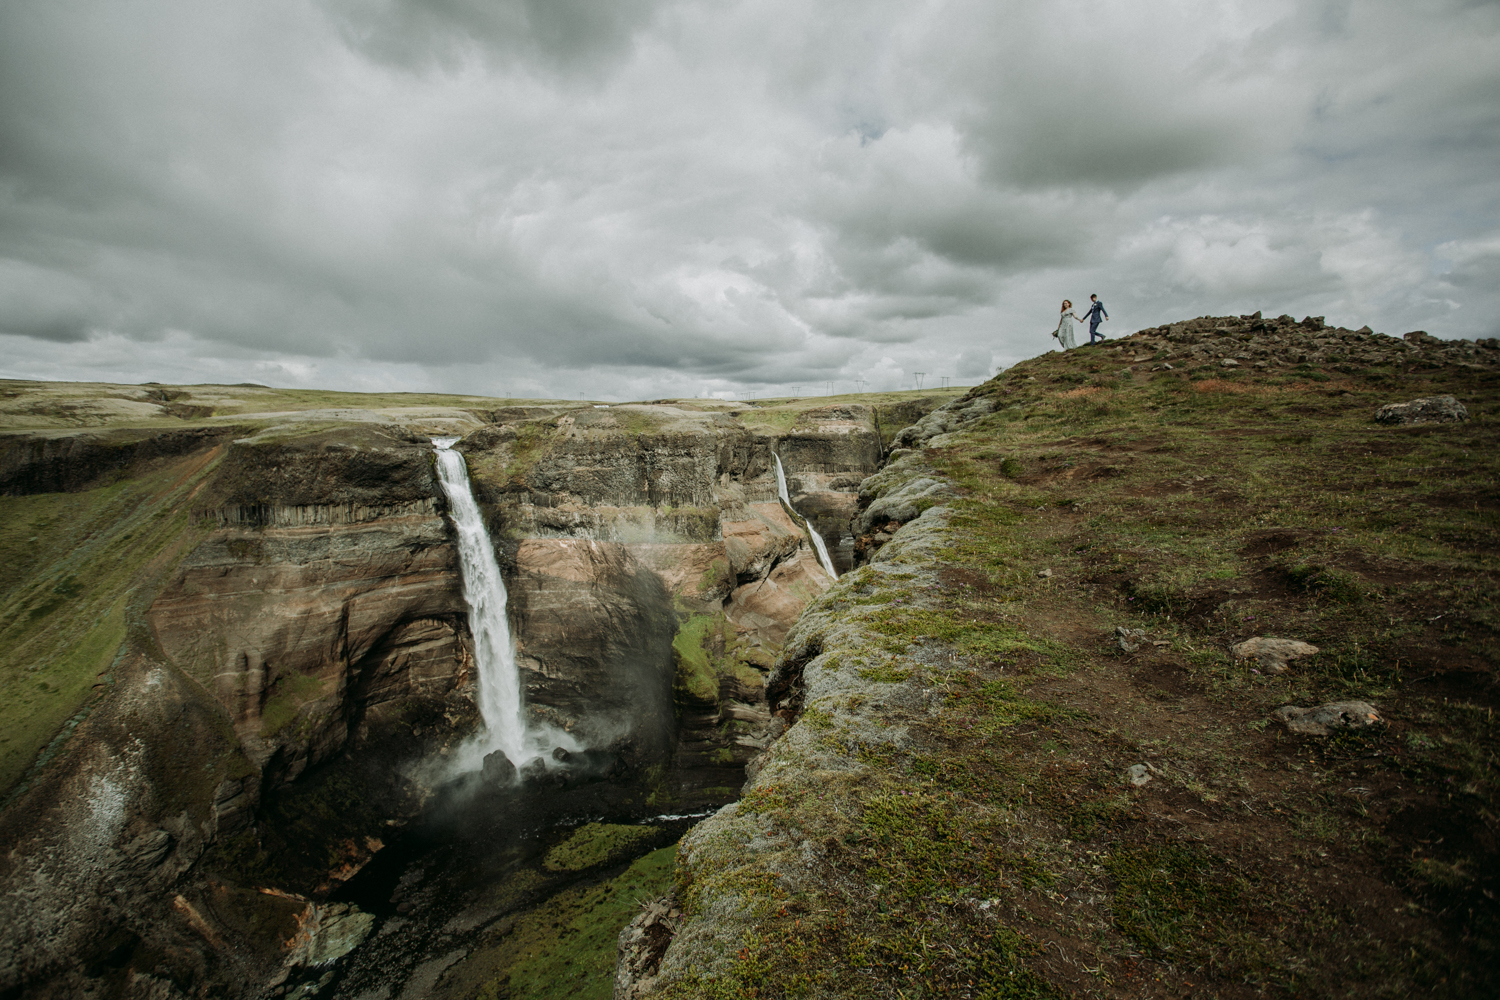 iceland elopement photos | best places to elope in iceland | how to plan an elopement